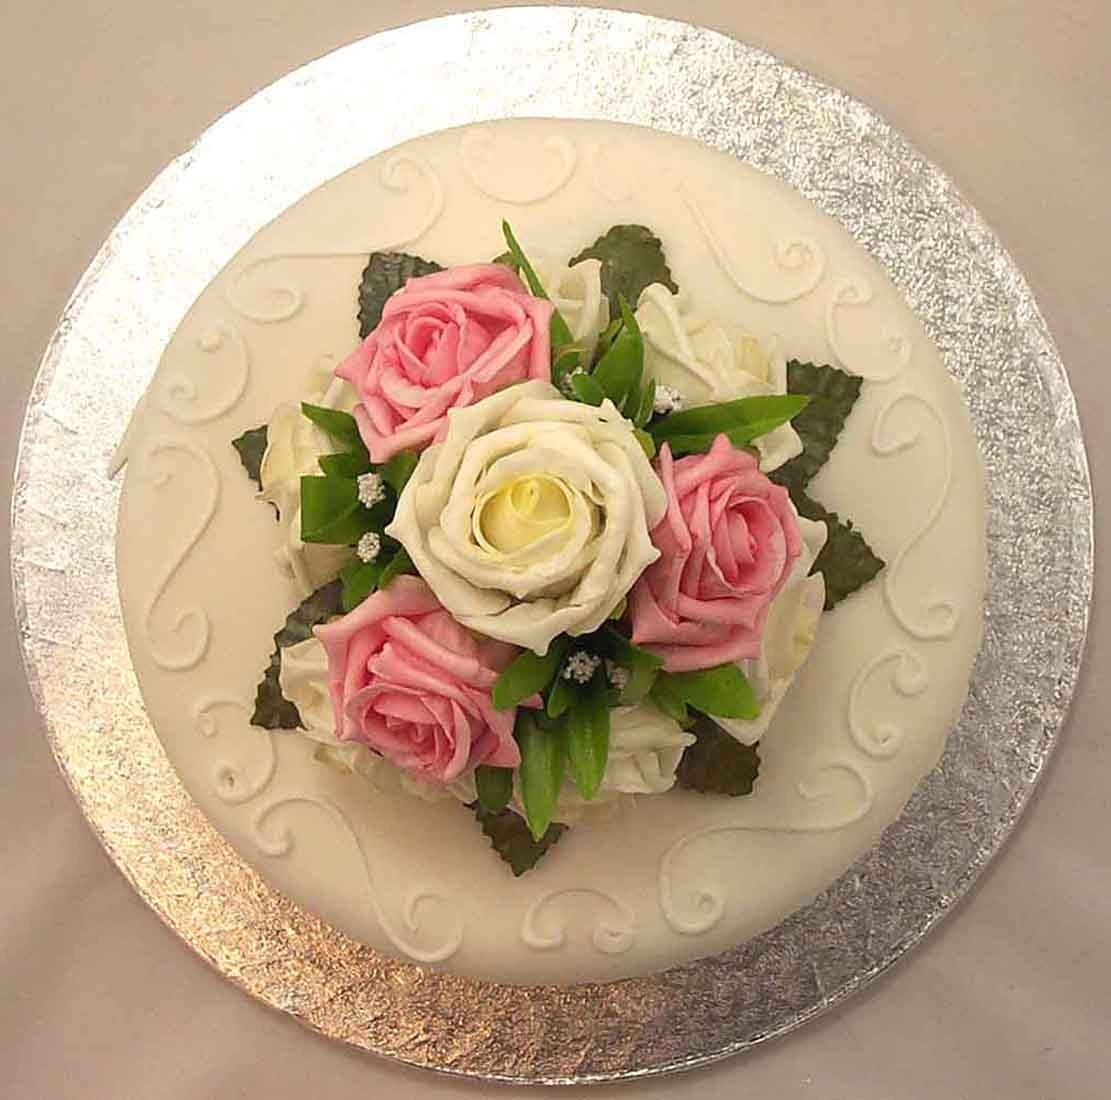 Cake Decorations Pink Roses : Cake Decorations - Cream & Pink Rose Luxury Cake Topper ...